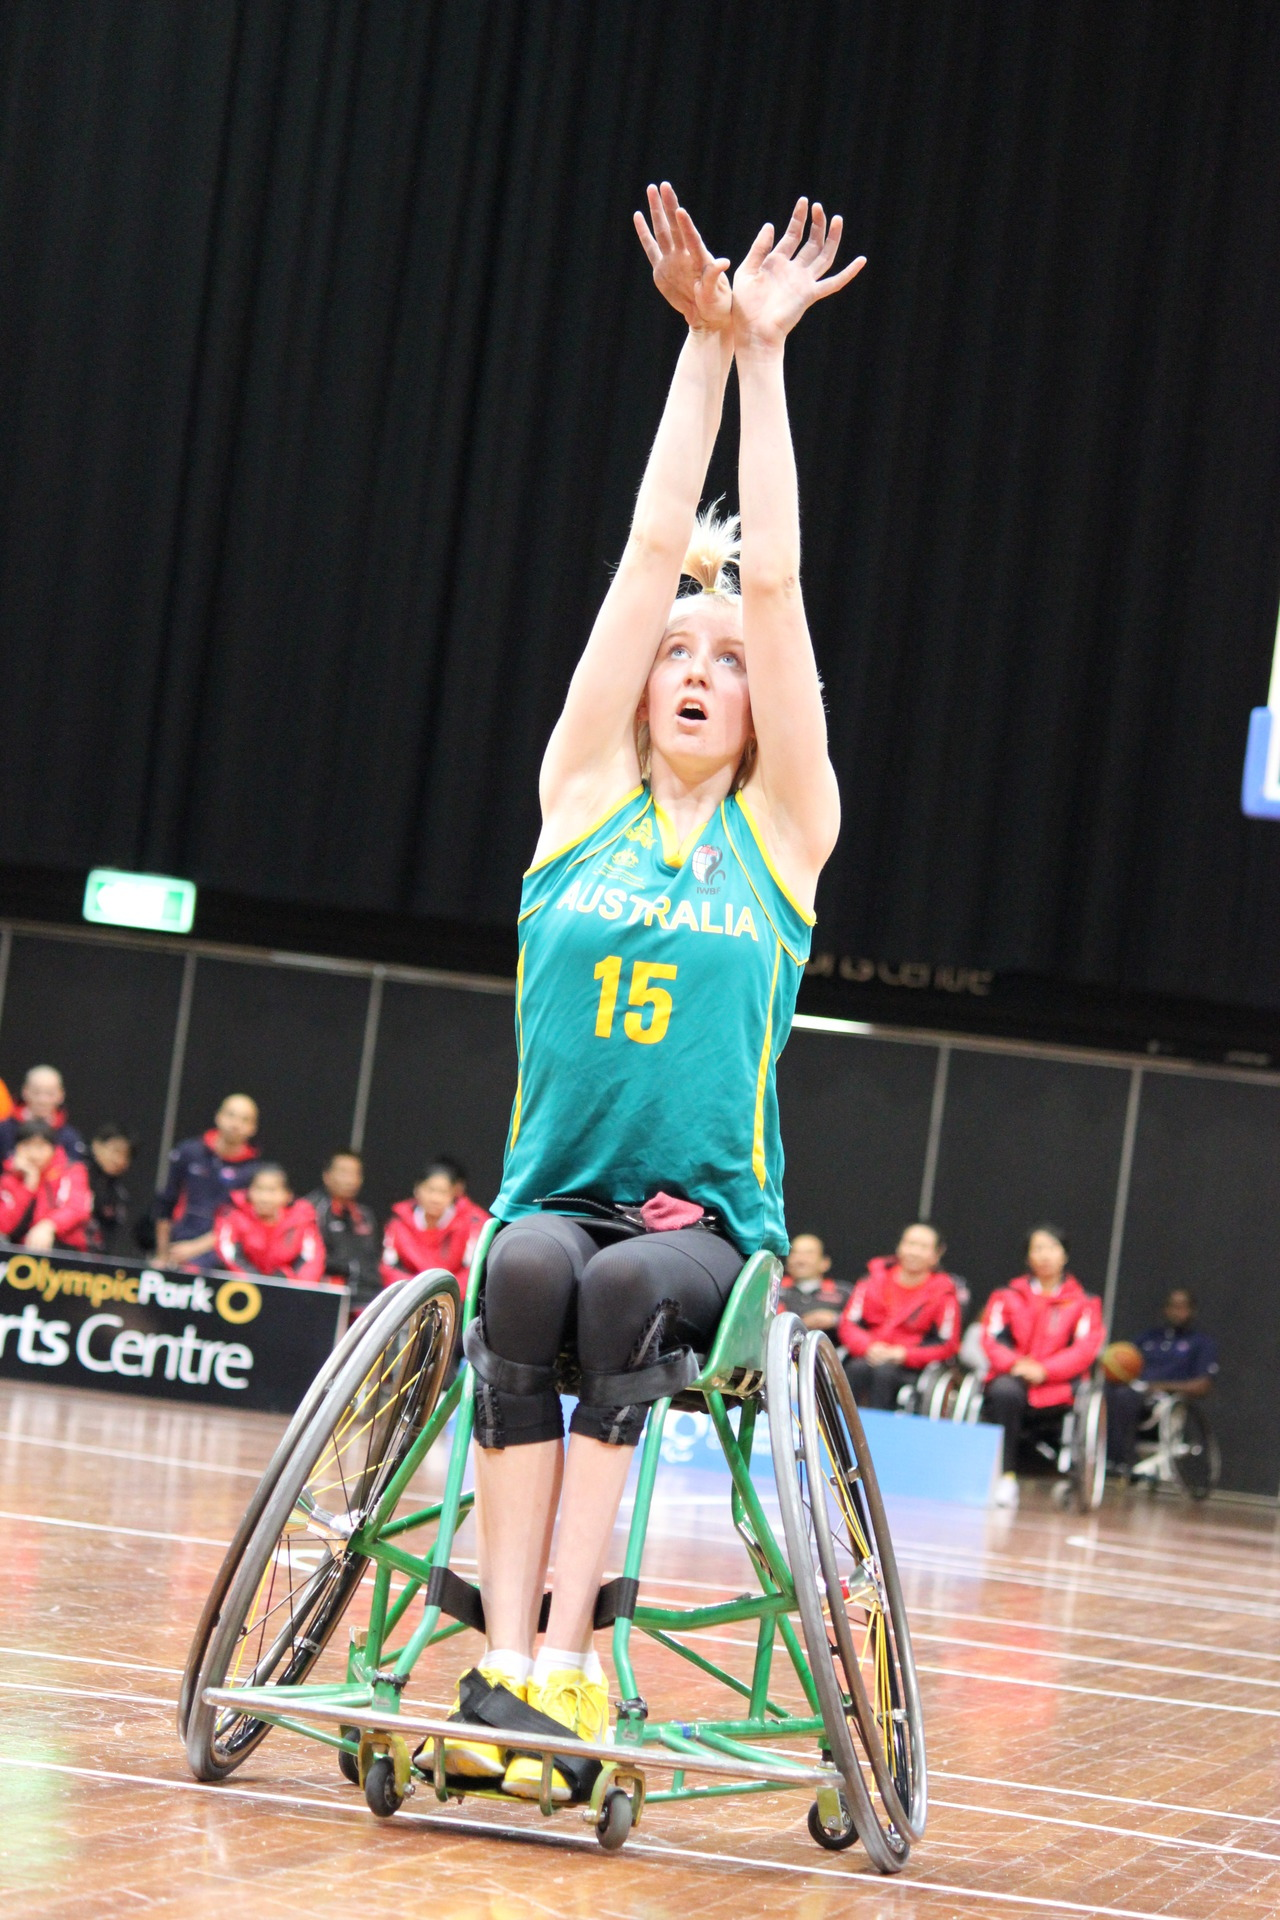 mr-craig:  Amber Merritt of the Australian women's wheelchair basketball team. One of my favourite players from my favourite team of the Paralympics.